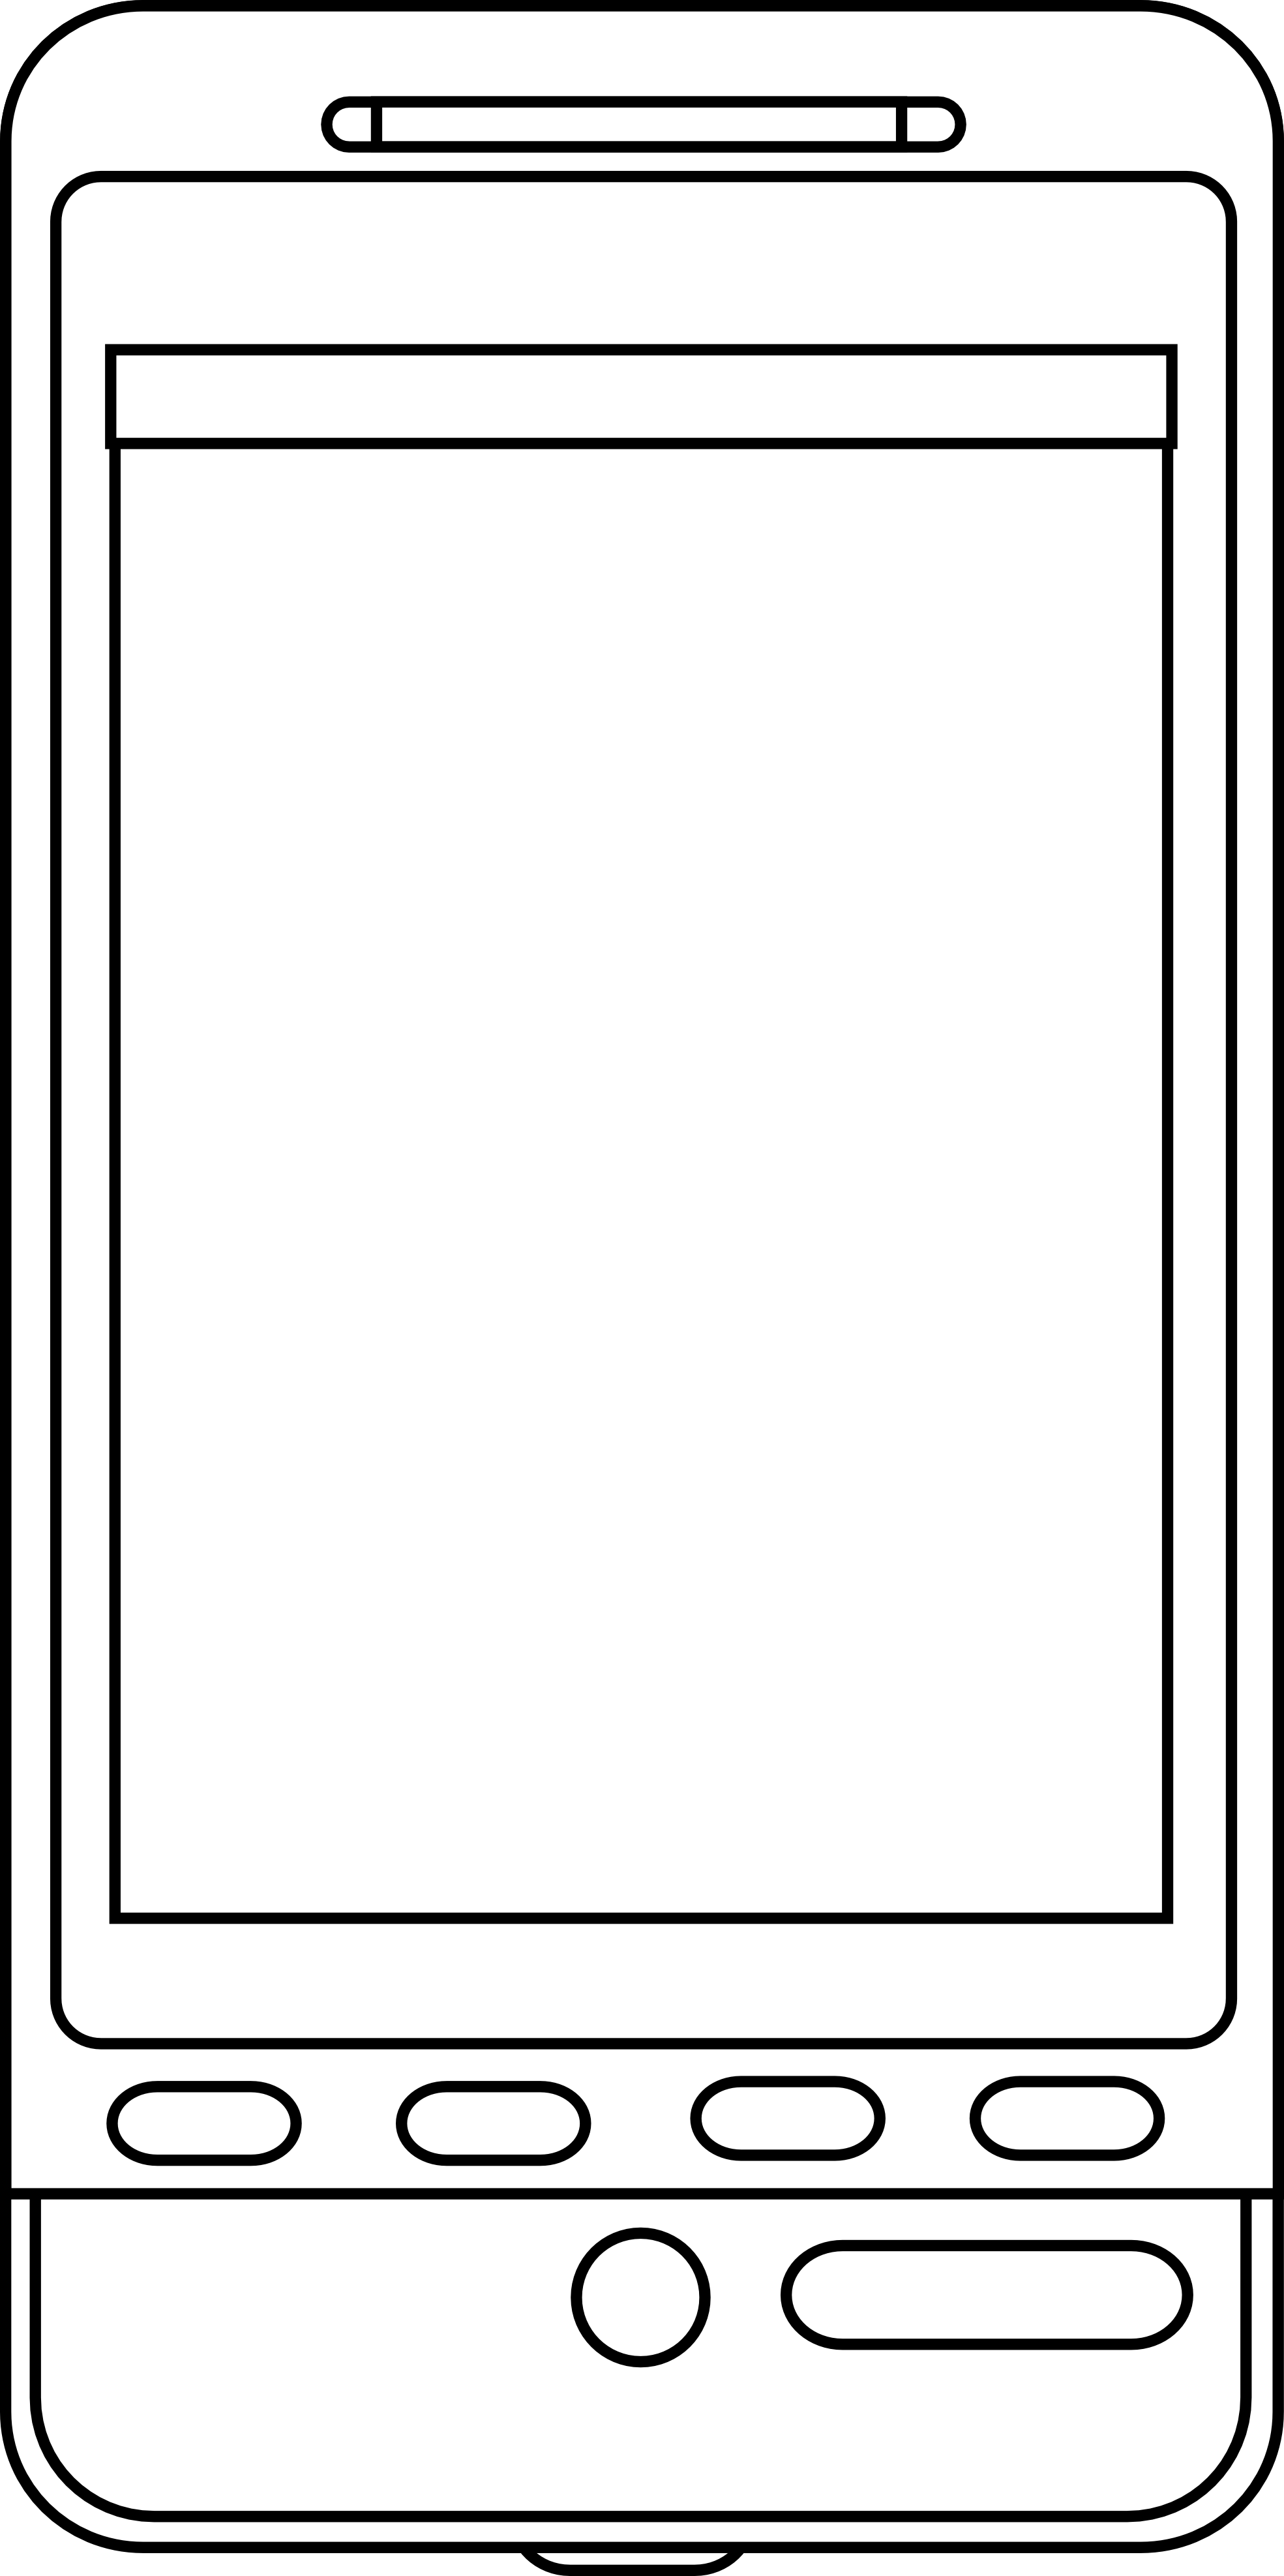 White clipart cellphone White And Black Clipart cell%20phone%20clipart%20black%20and%20white